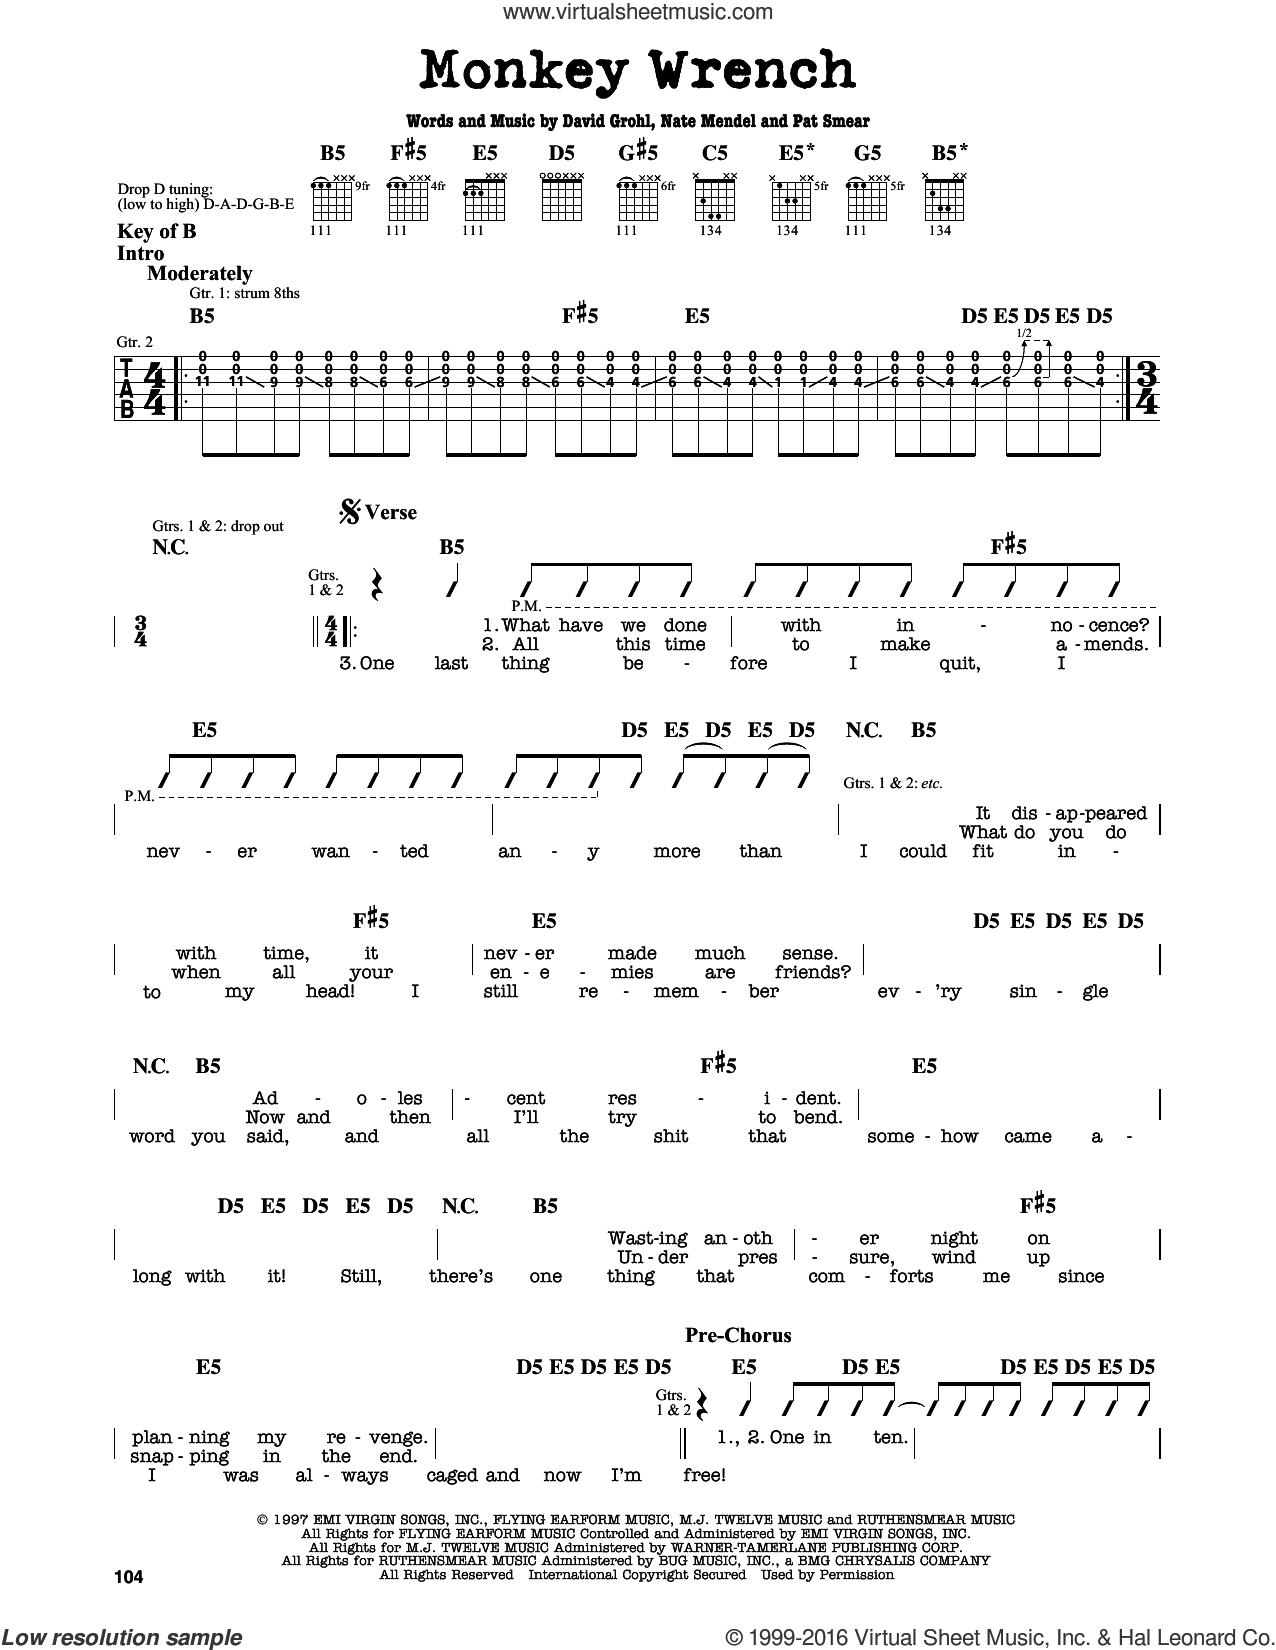 Monkey Wrench sheet music for guitar solo (lead sheet) by Nate Mendel